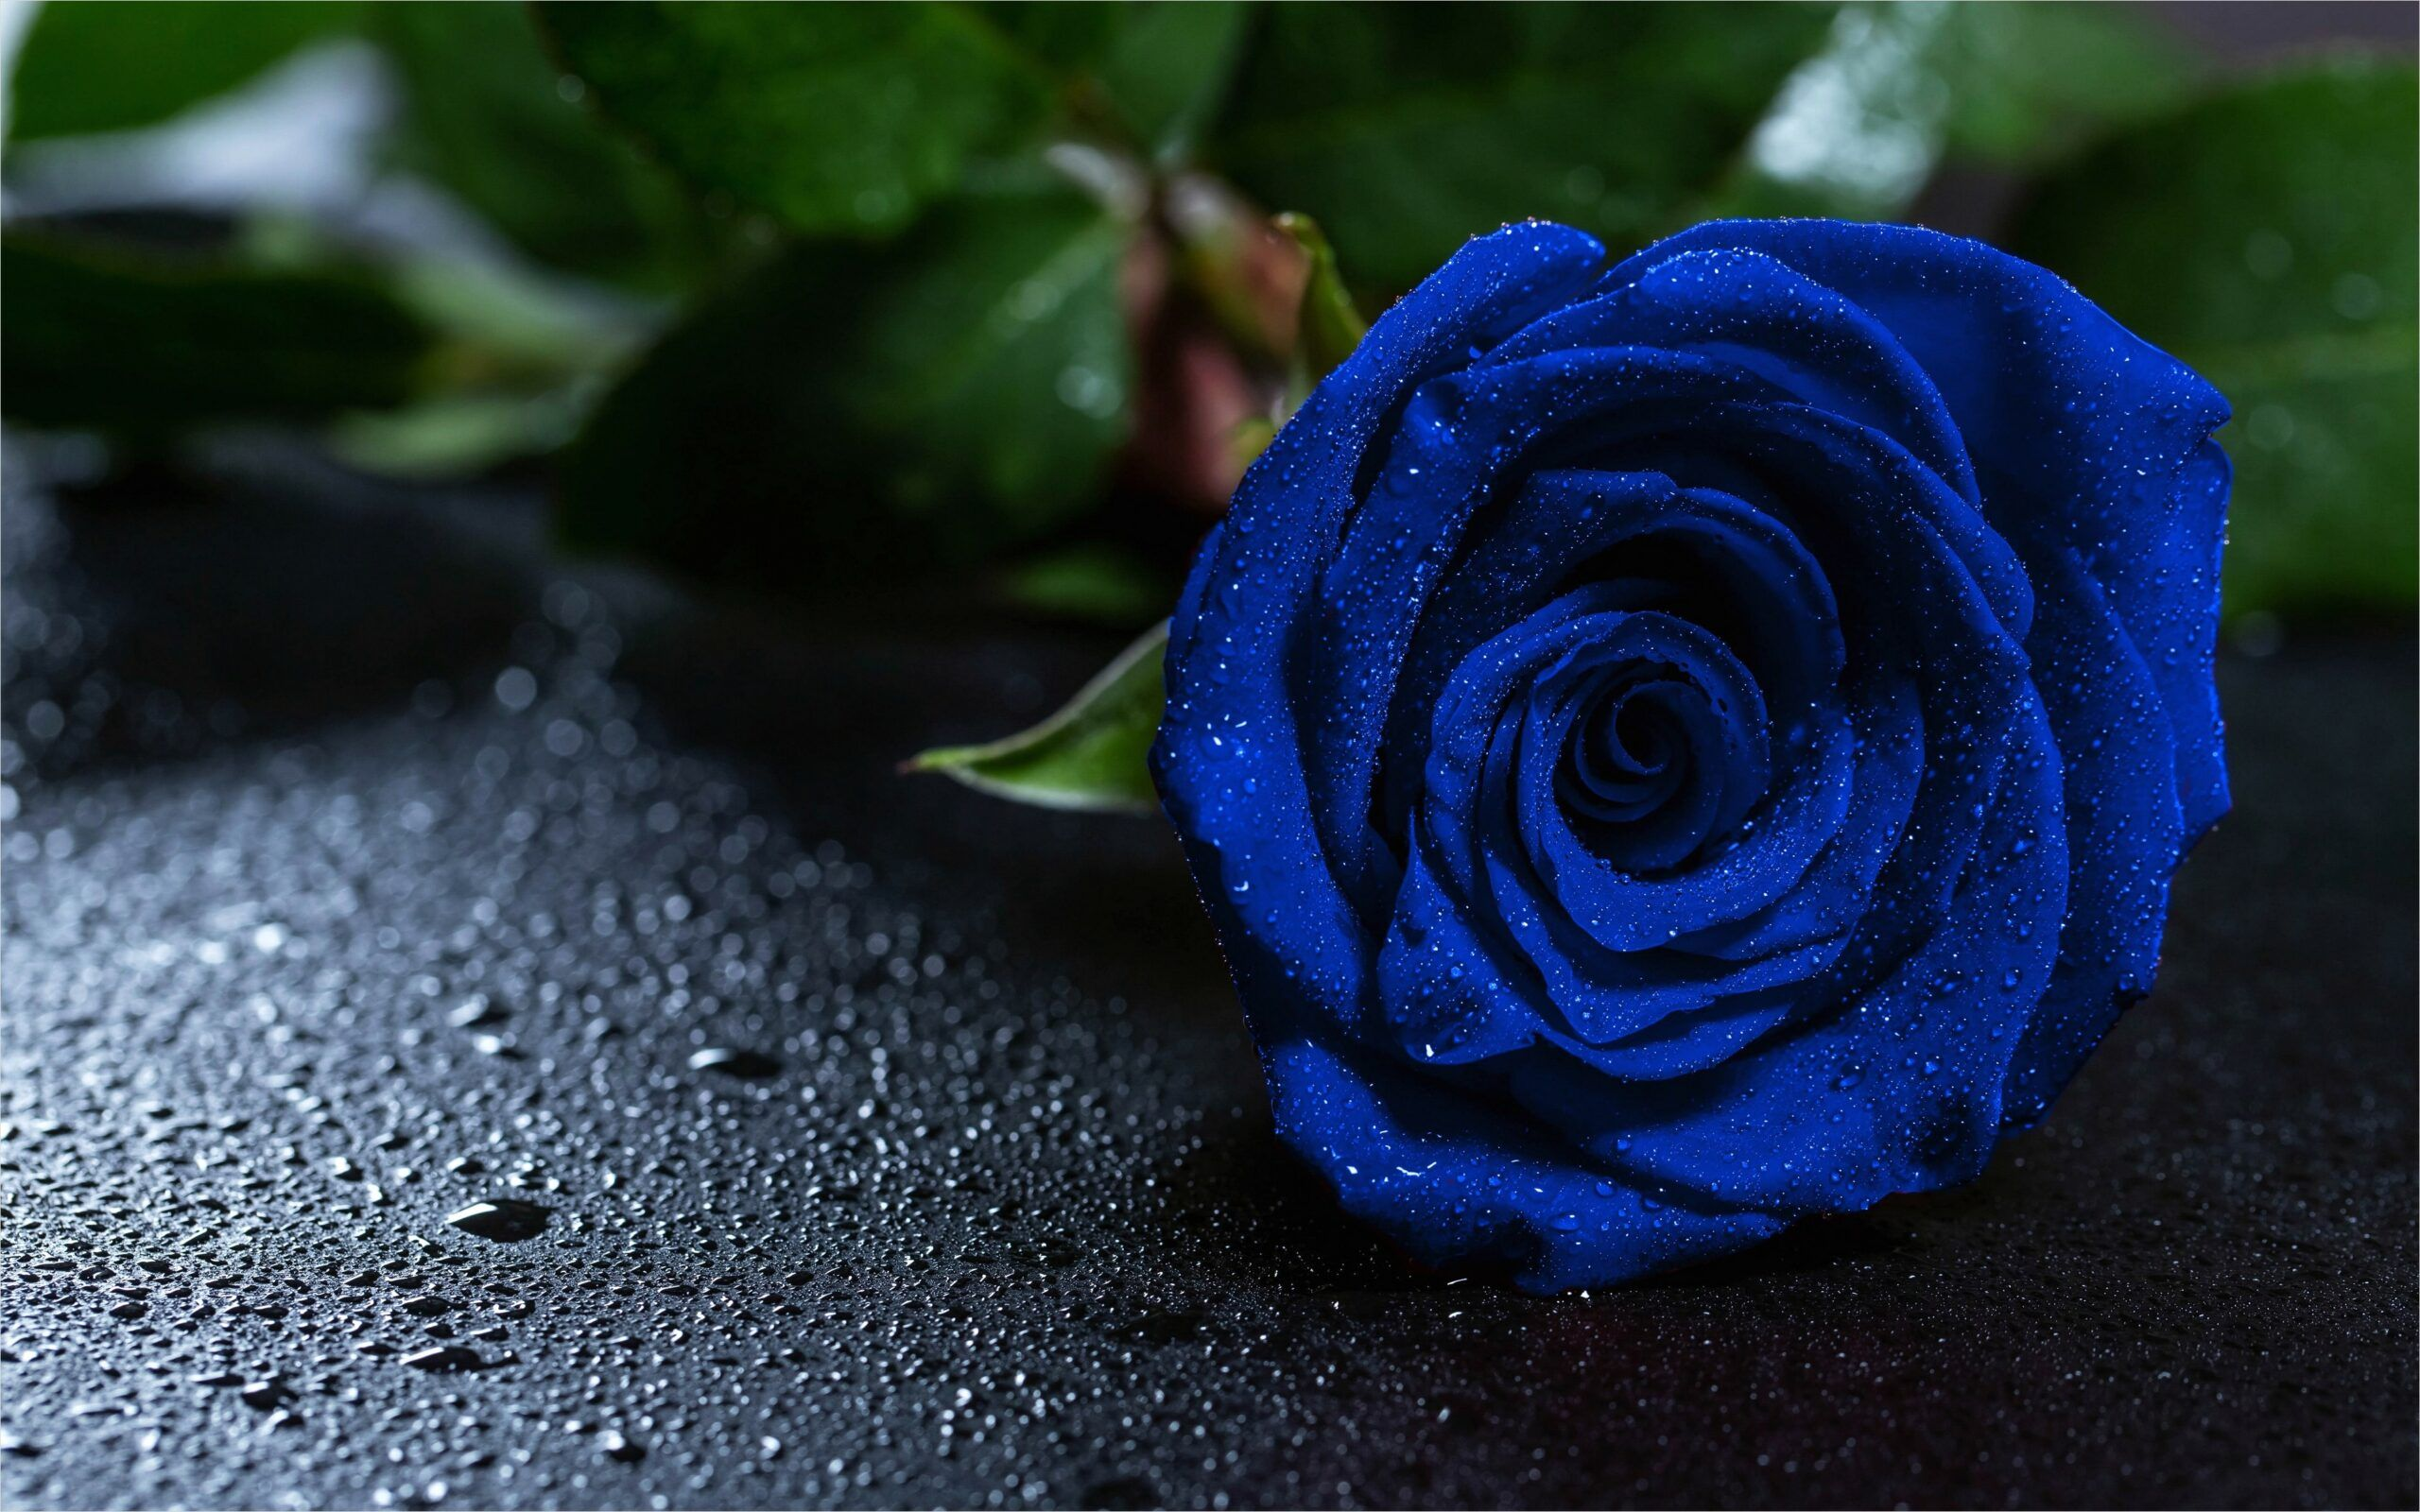 4k Blue Rose Wallpaper In 2020 Blue Roses Wallpaper Rose Wallpaper Rose